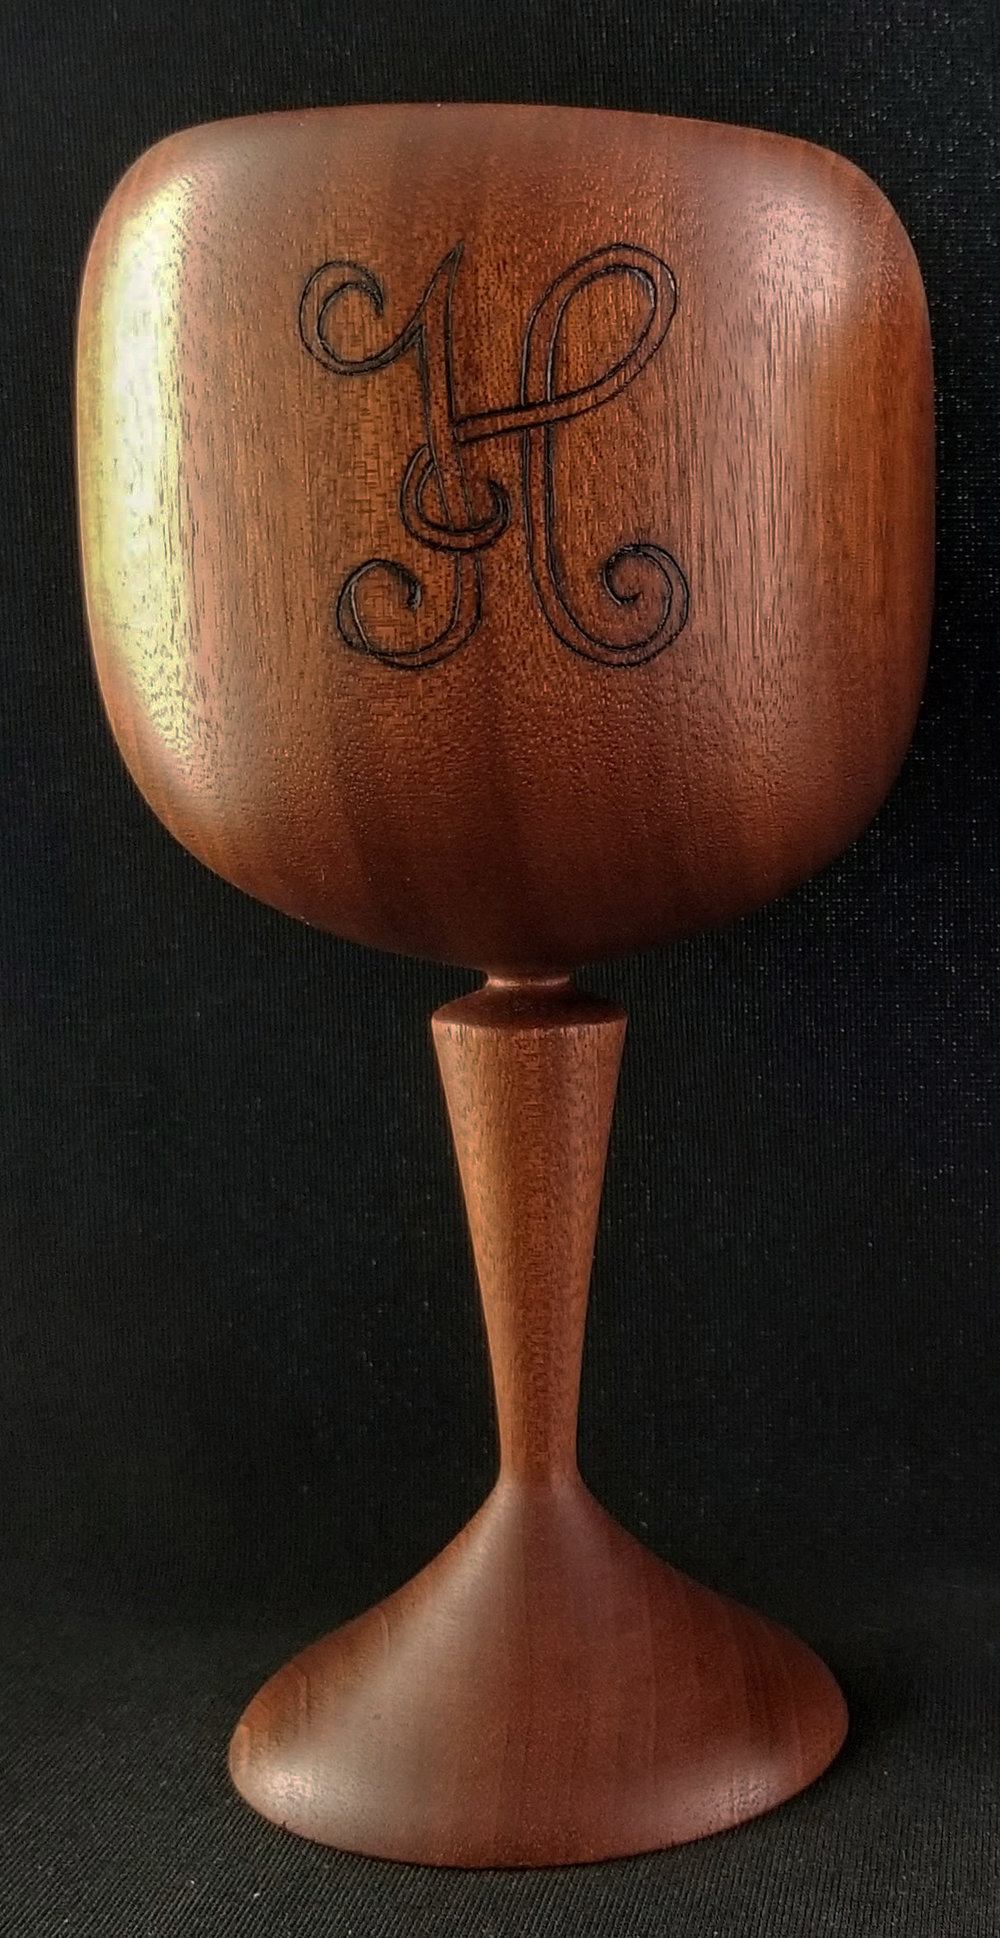 Mahogany wood wine goblet with the letter H in classic wedding font inscribed on it.